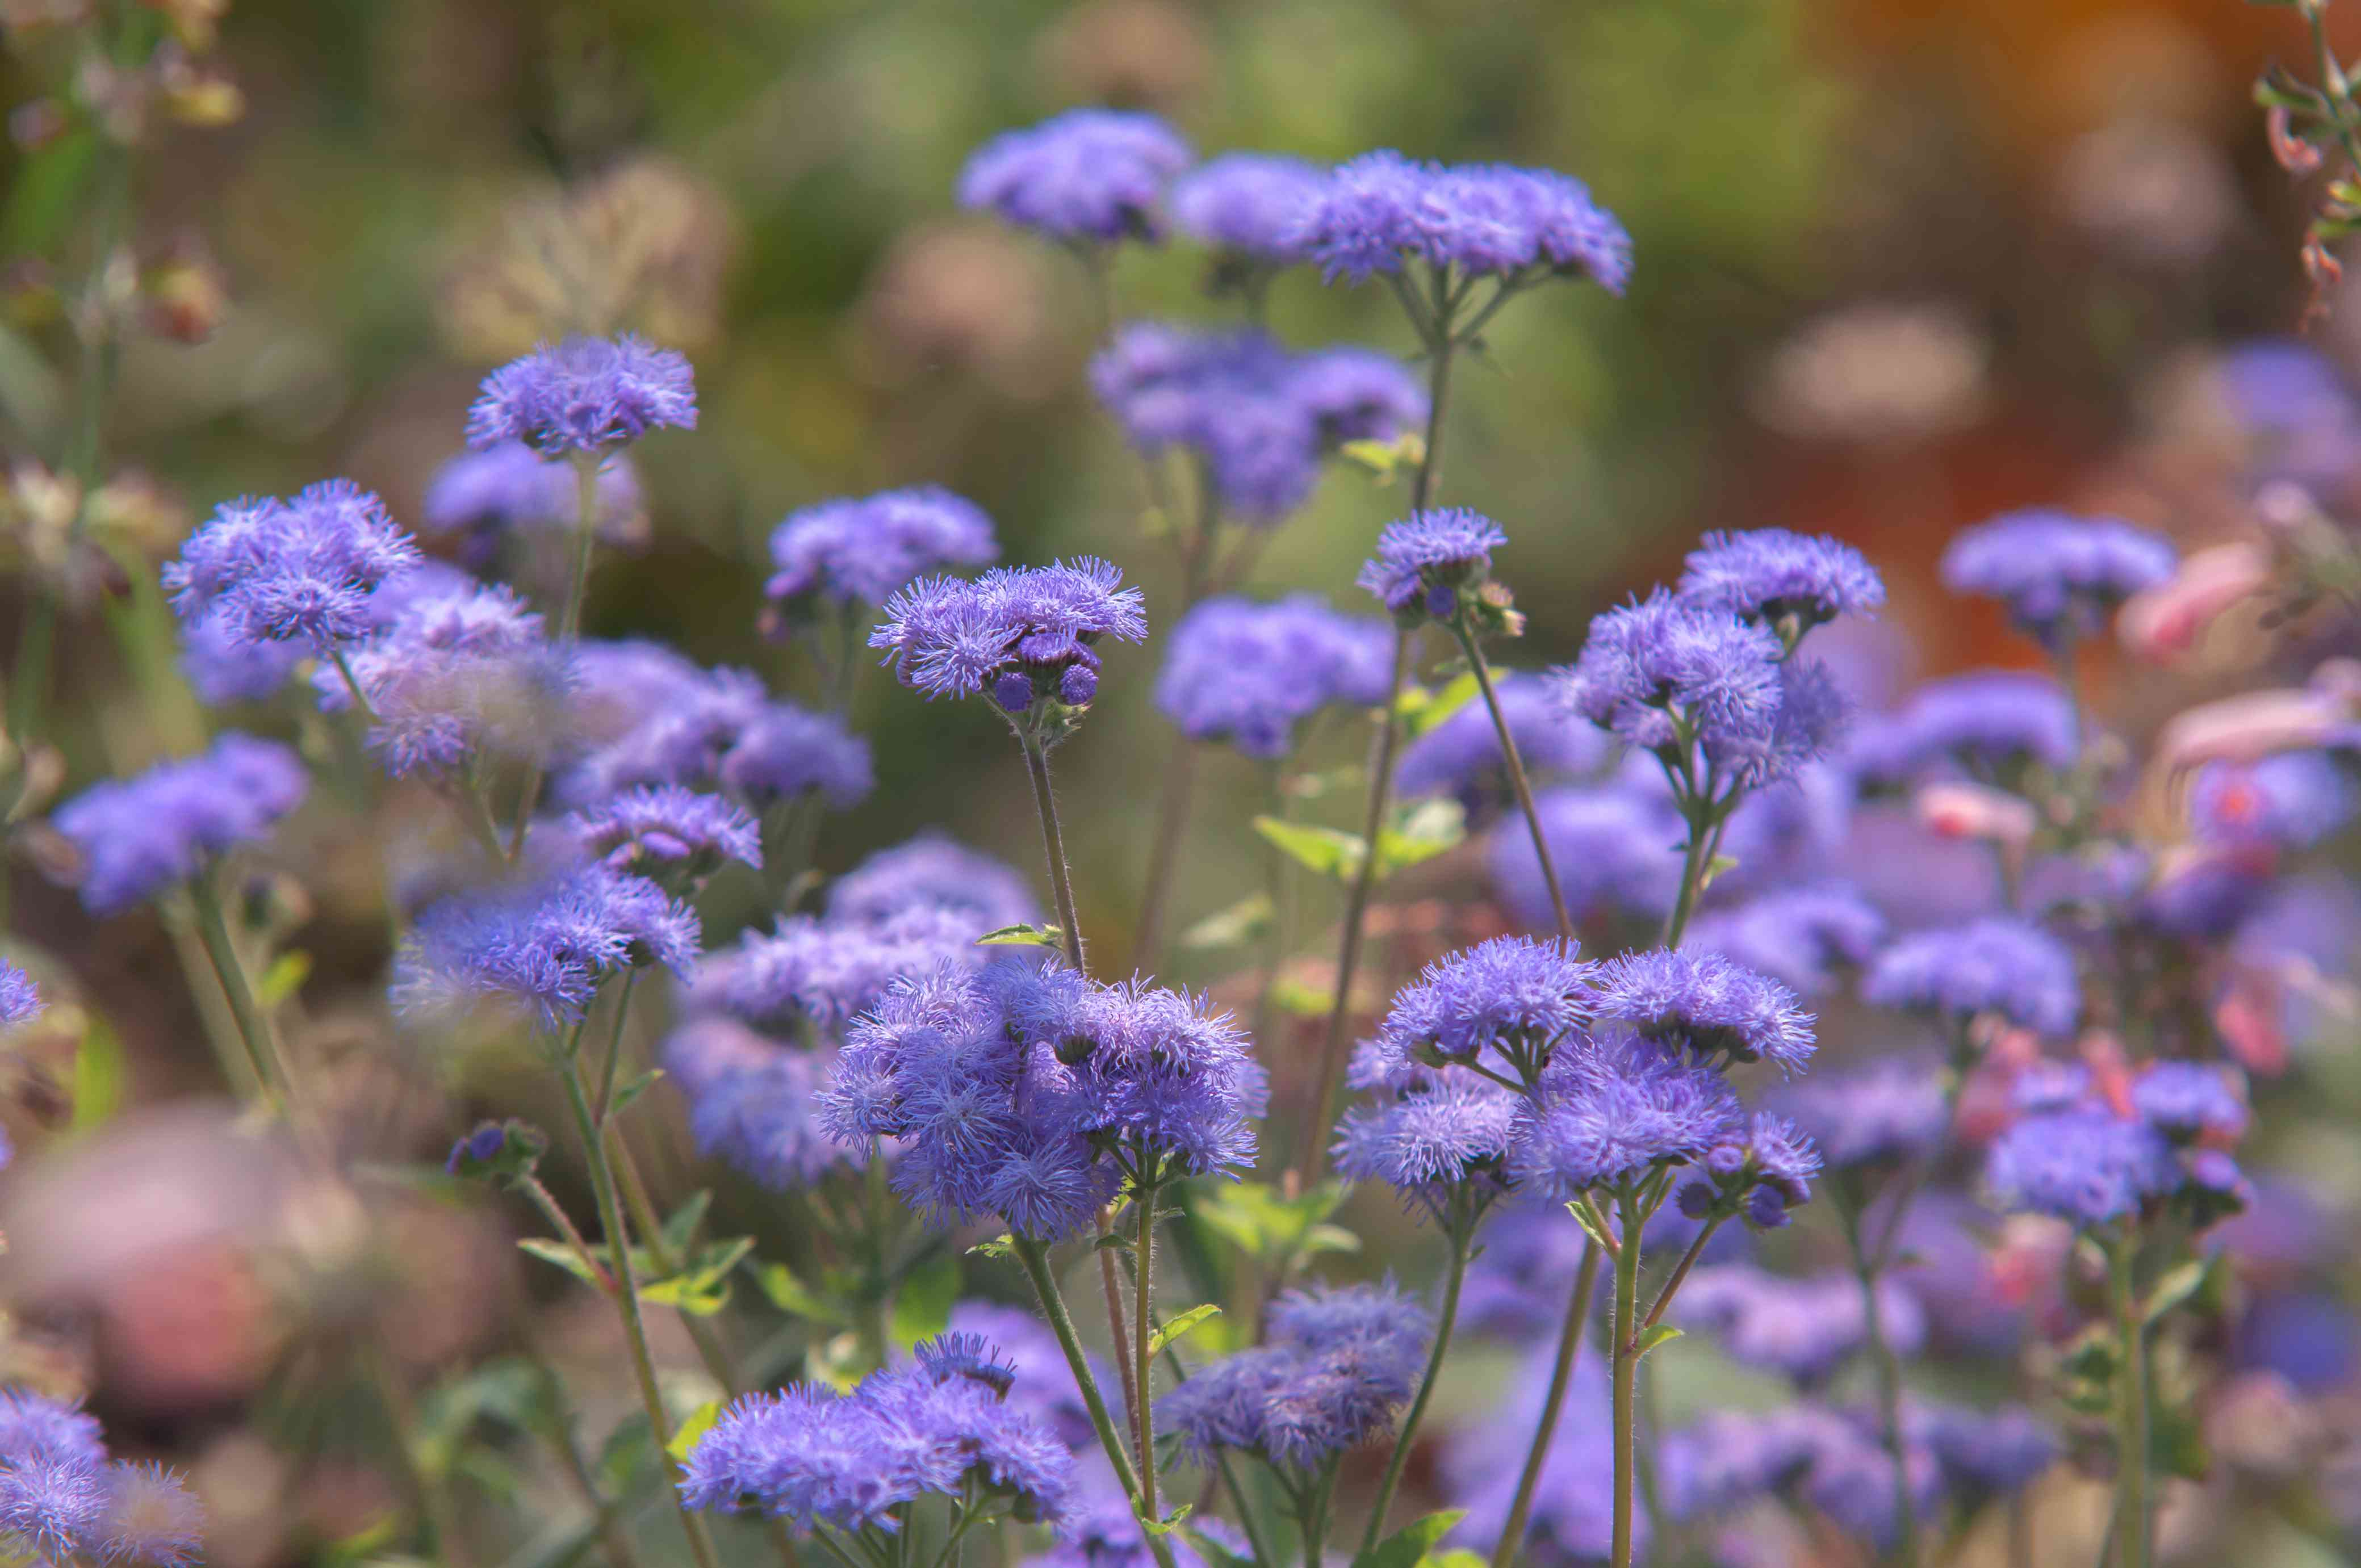 Ageratum plant with purple flowers in garden